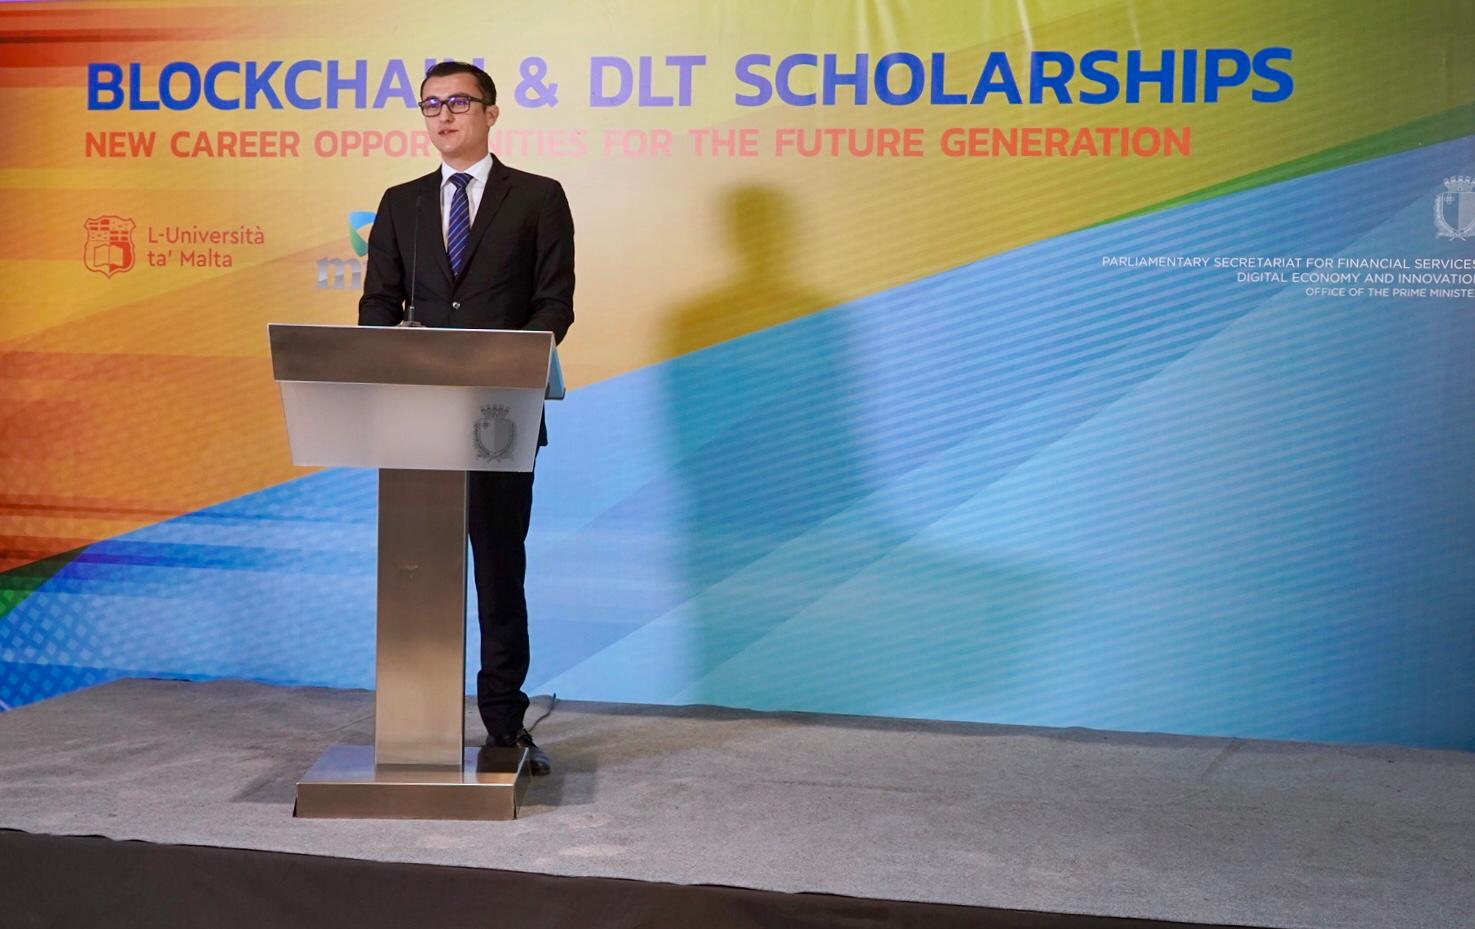 PRESS RELEASE BY THE PARLIAMENTARY SECRETARIAT FOR FINANCIAL SERVICES, DIGITAL ECONOMY AND INNOVATION:  Blockchain scholarship awarded to 19 students